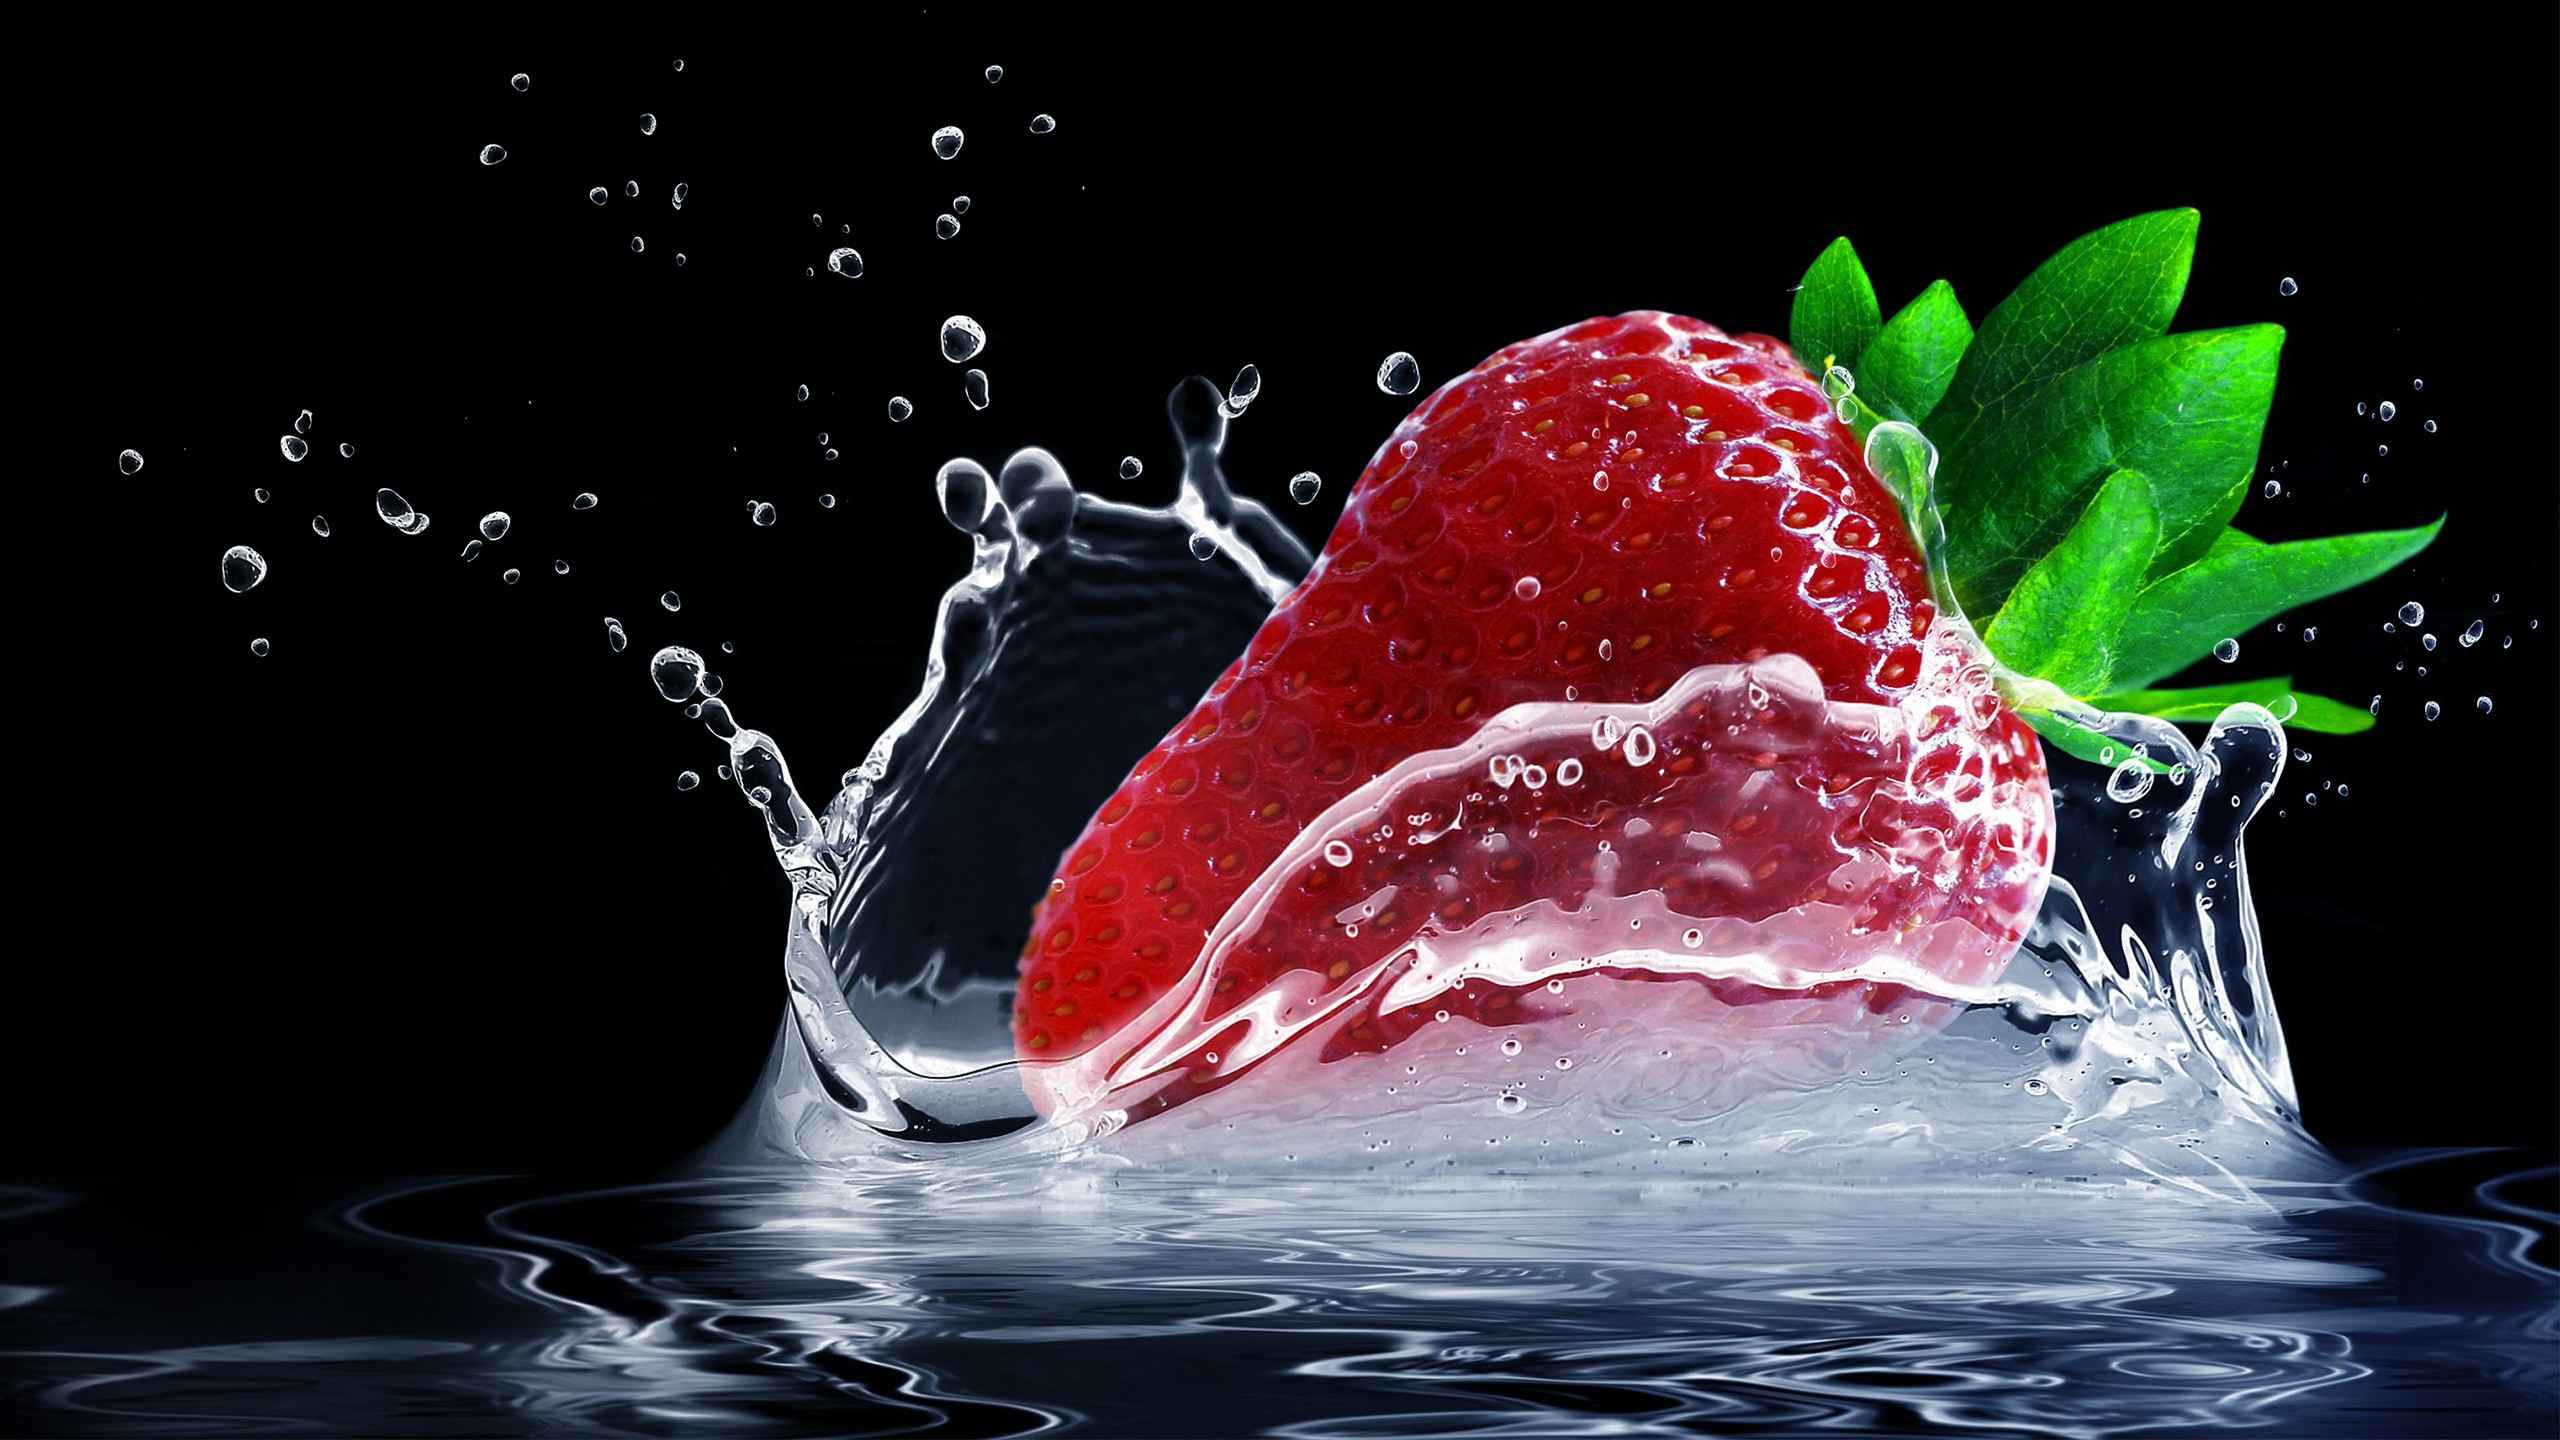 Wallpaper Glass 3d Strawberry Water Splash Wallpapers Hd Wallpapers Id 20779